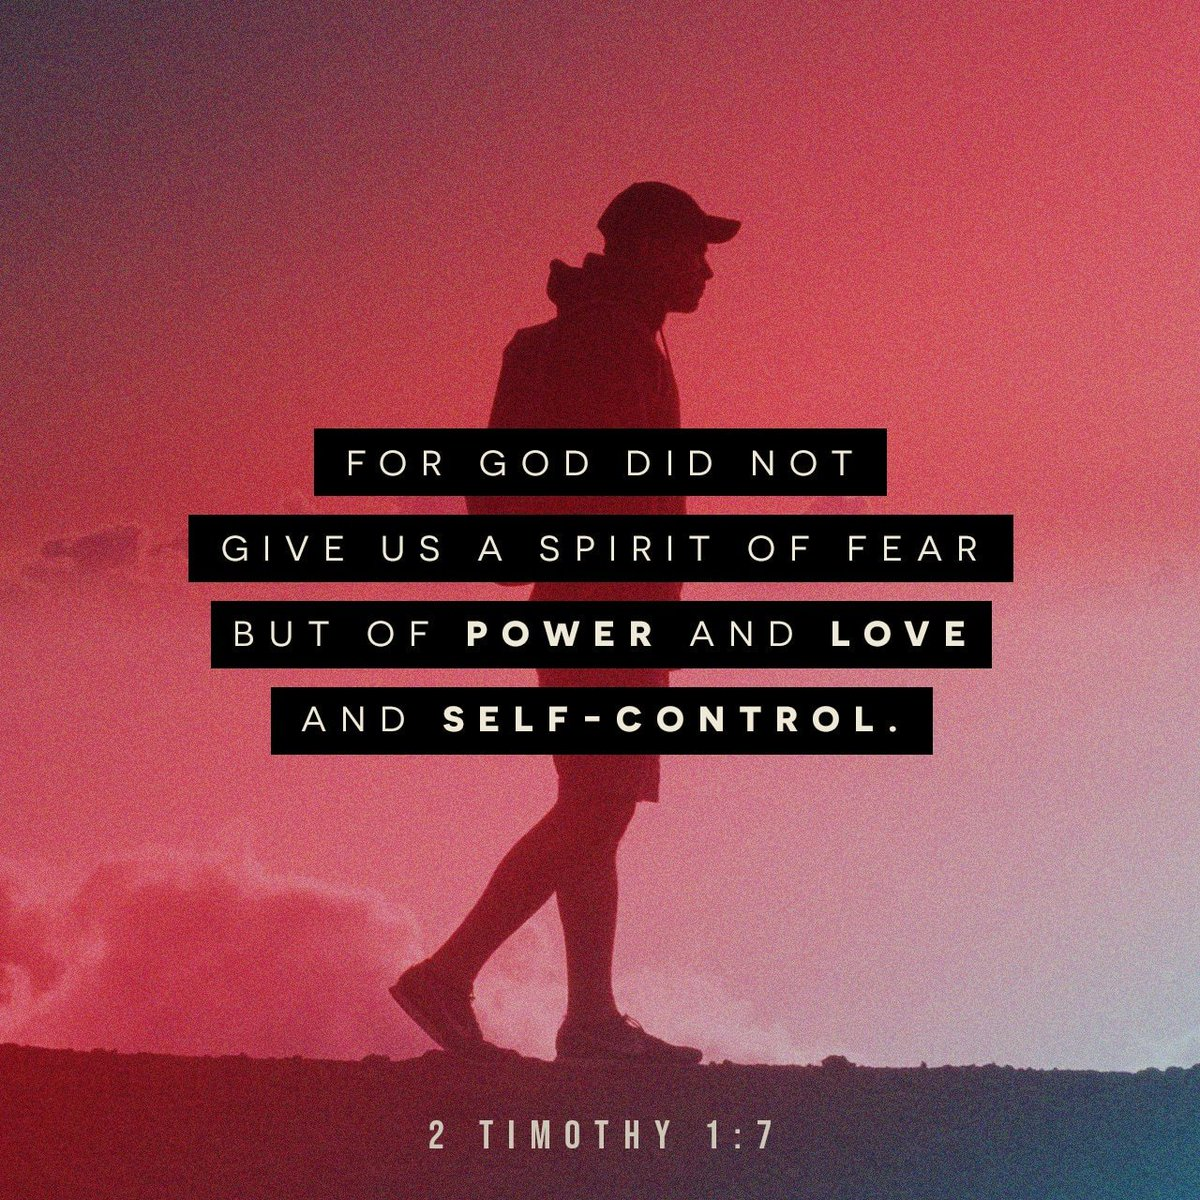 For God has not given us a spirit of fear, but of power and of love and of a sound mind. I…  https:// bible.com/verse-of-the-d ay/2ti.1.7/36069   … <br>http://pic.twitter.com/TSfYMWBBRs